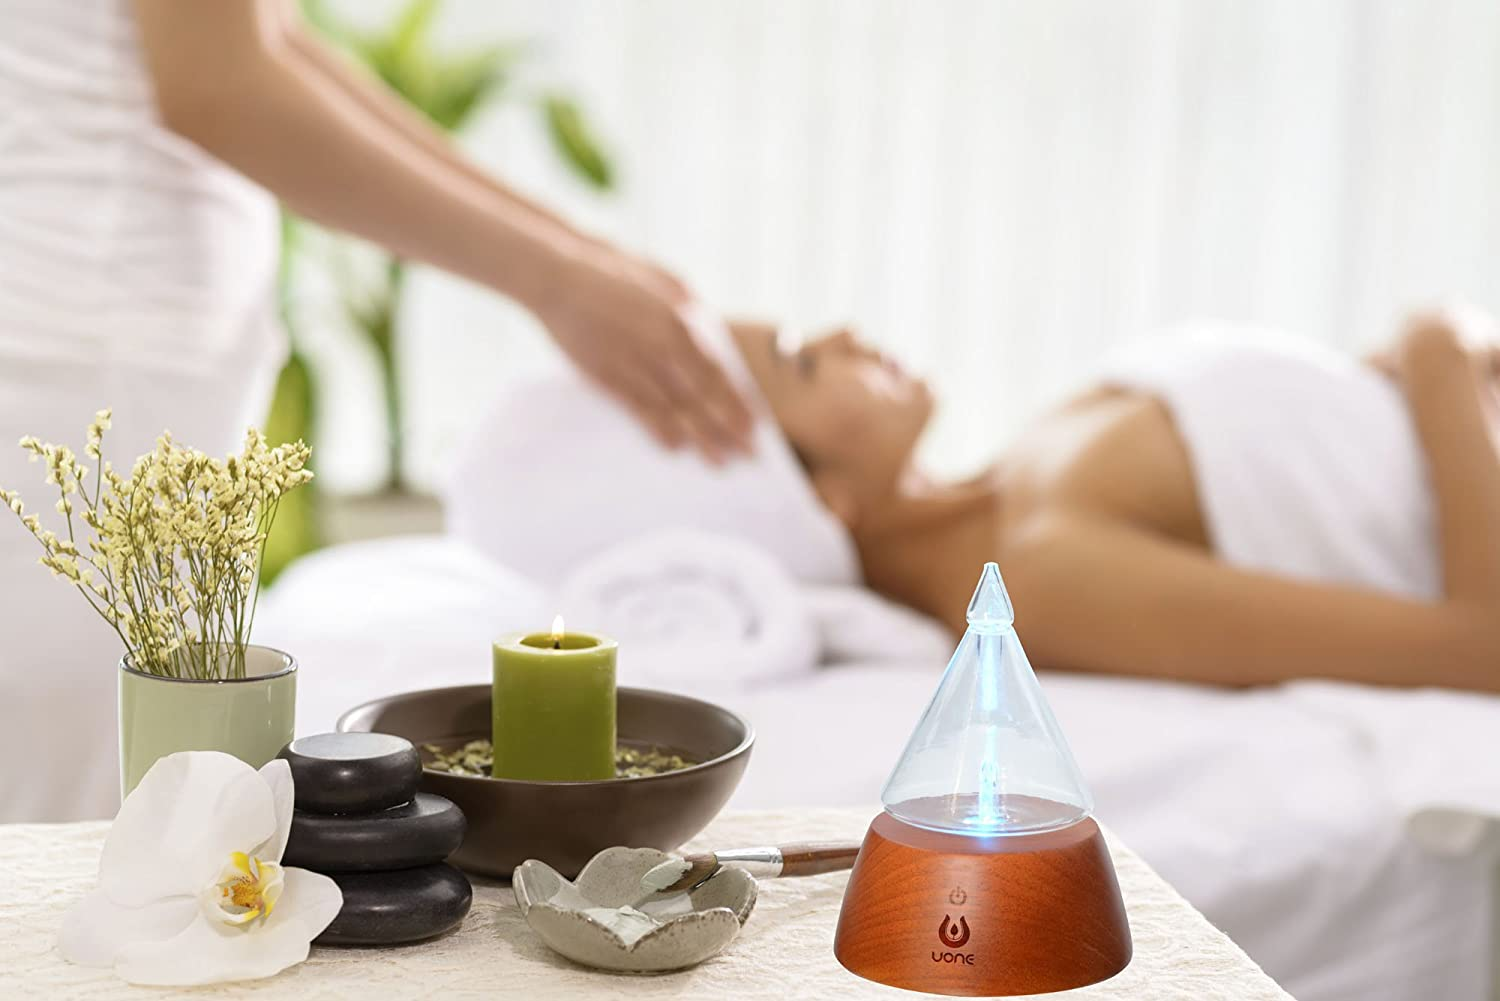 UONE Essential Oil Diffuser for Aroma Nebulizing, Waterless Aromatherapy Nebulizer - with Touch Button, Timer and 7 Color Changing LED lights, No Heat, No Water, No Plastic - Handmade Wood and Glass. : Beauty